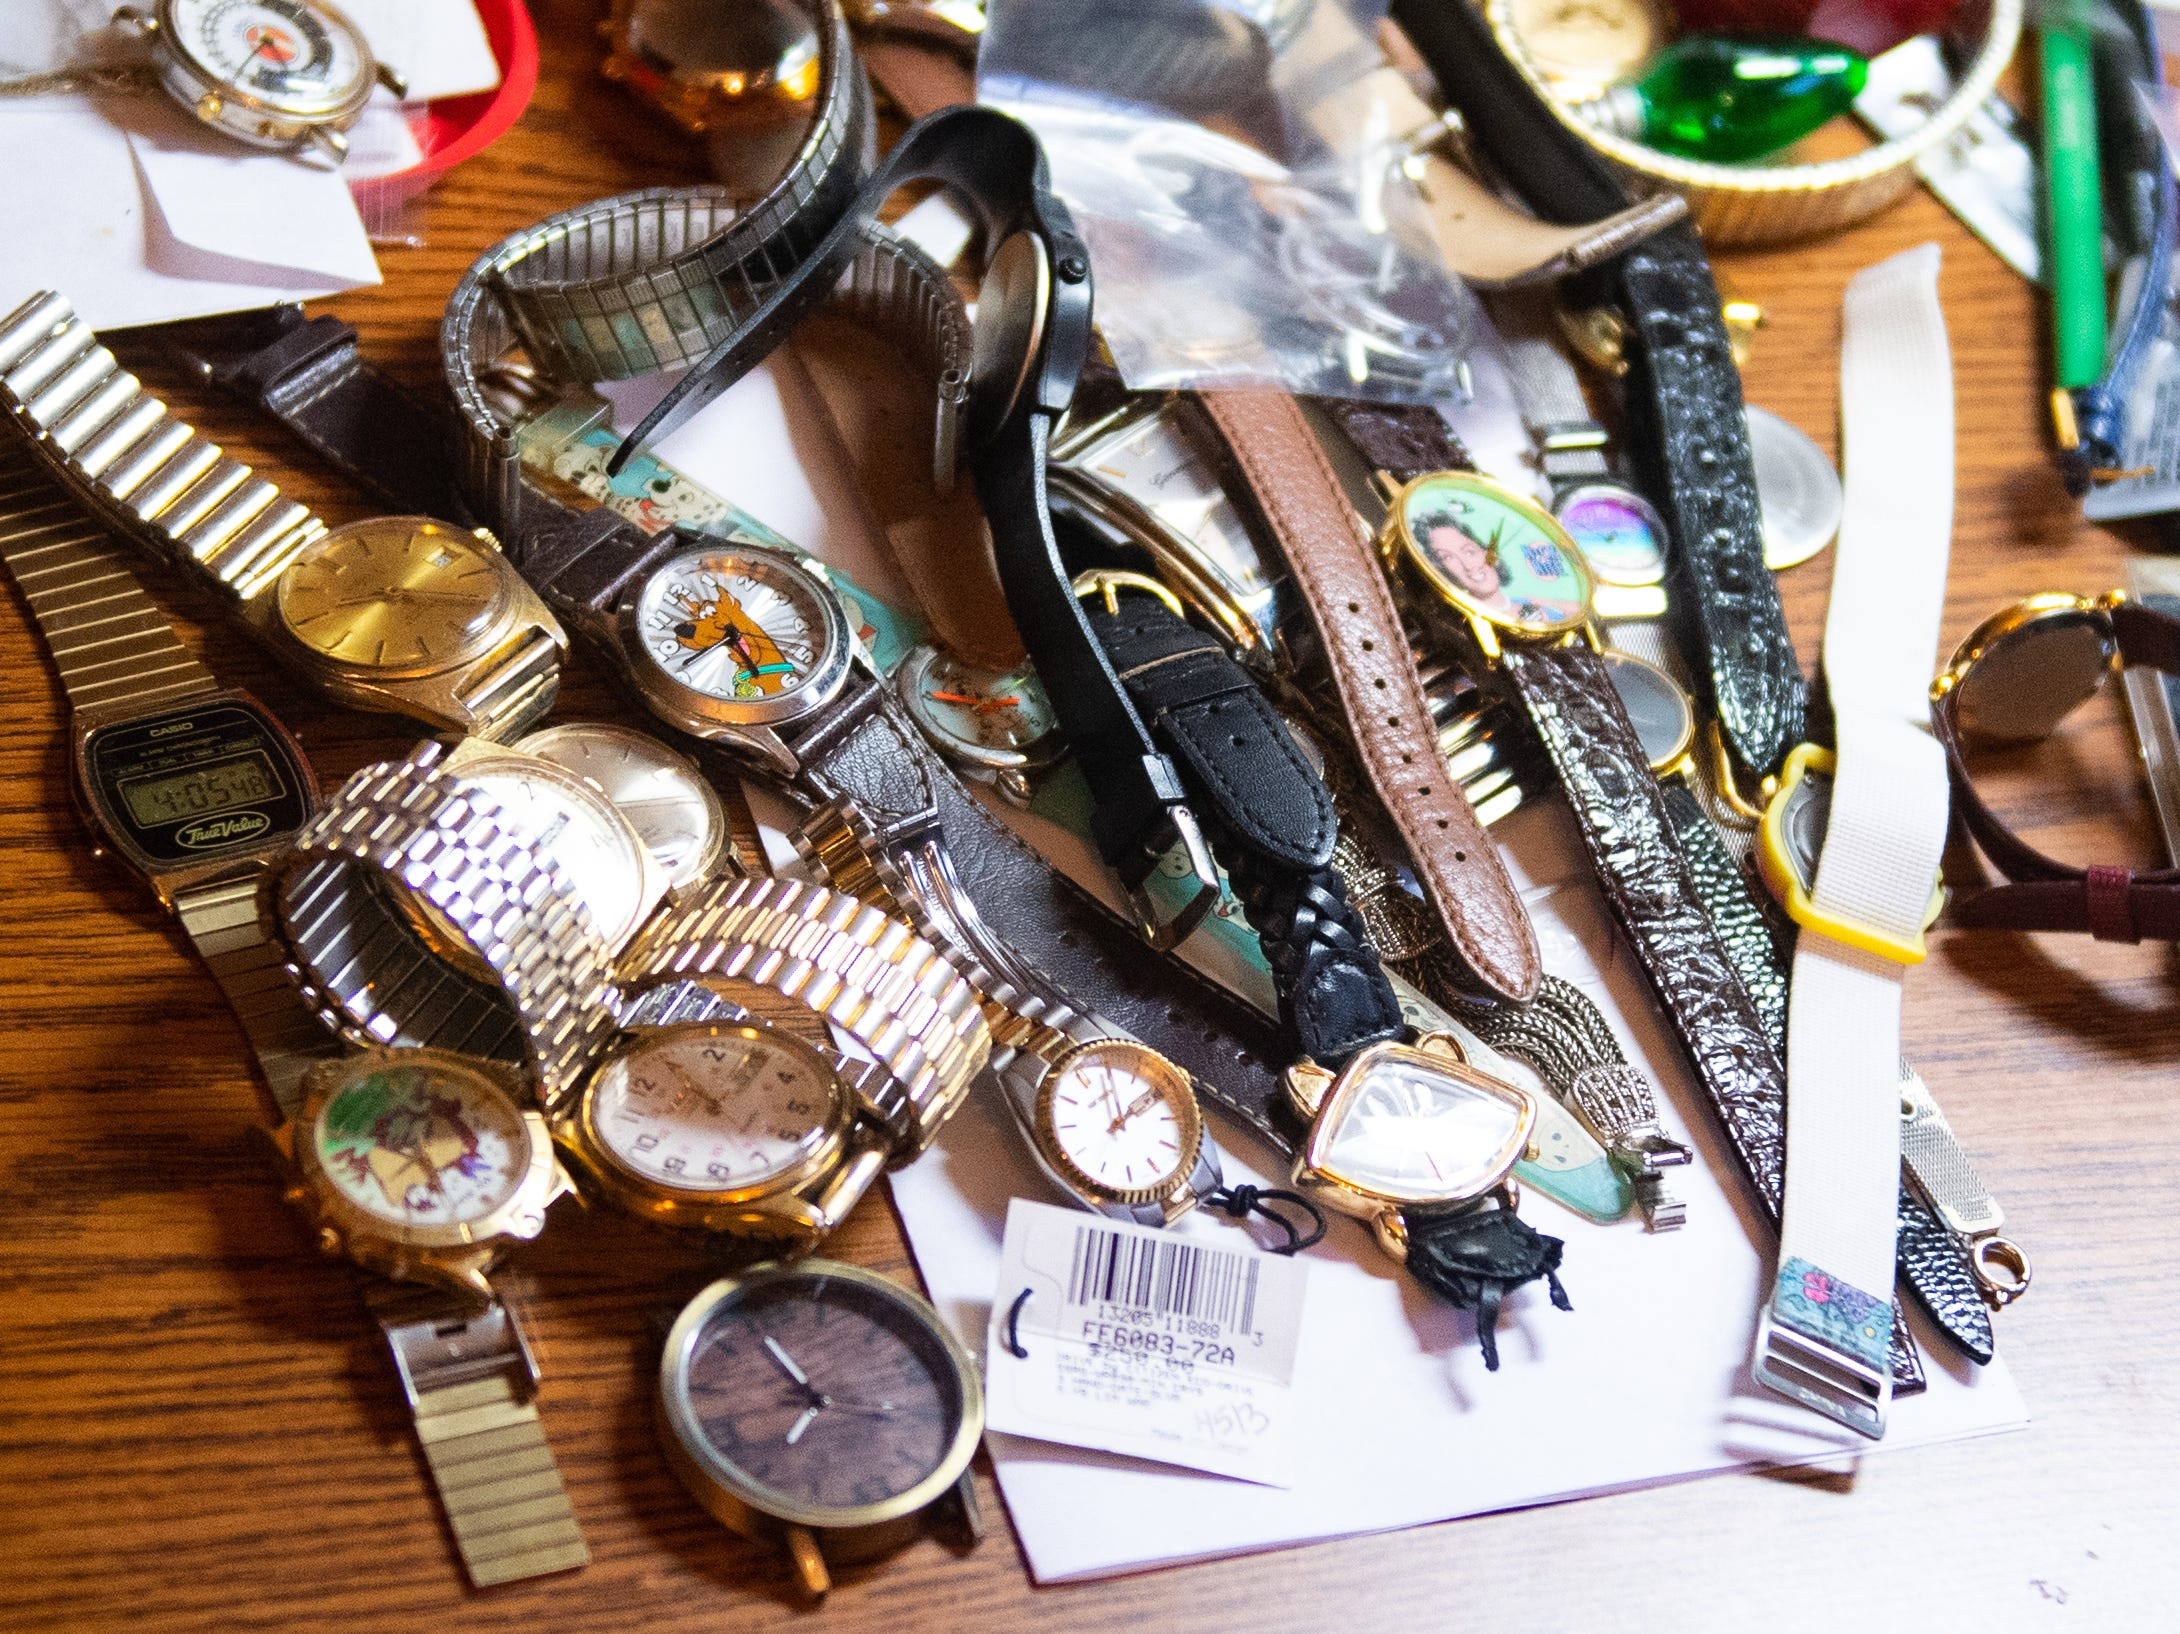 Ronald Botterbusch's daughter also works on watches. Her desk is full of things she's currently fixing, January 30, 2019.